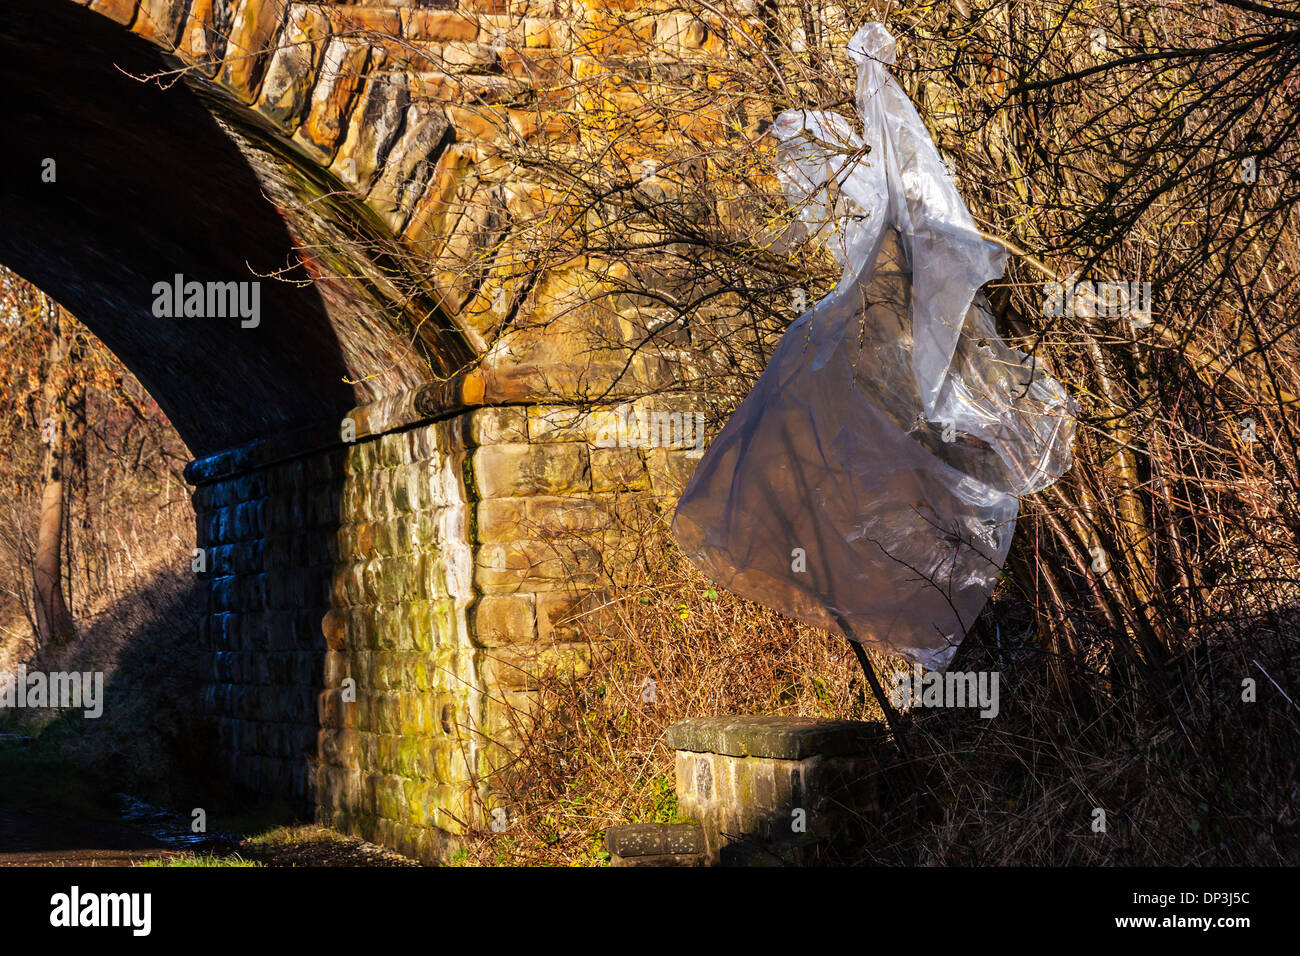 Plastic Waste in Countryside Stock Photo